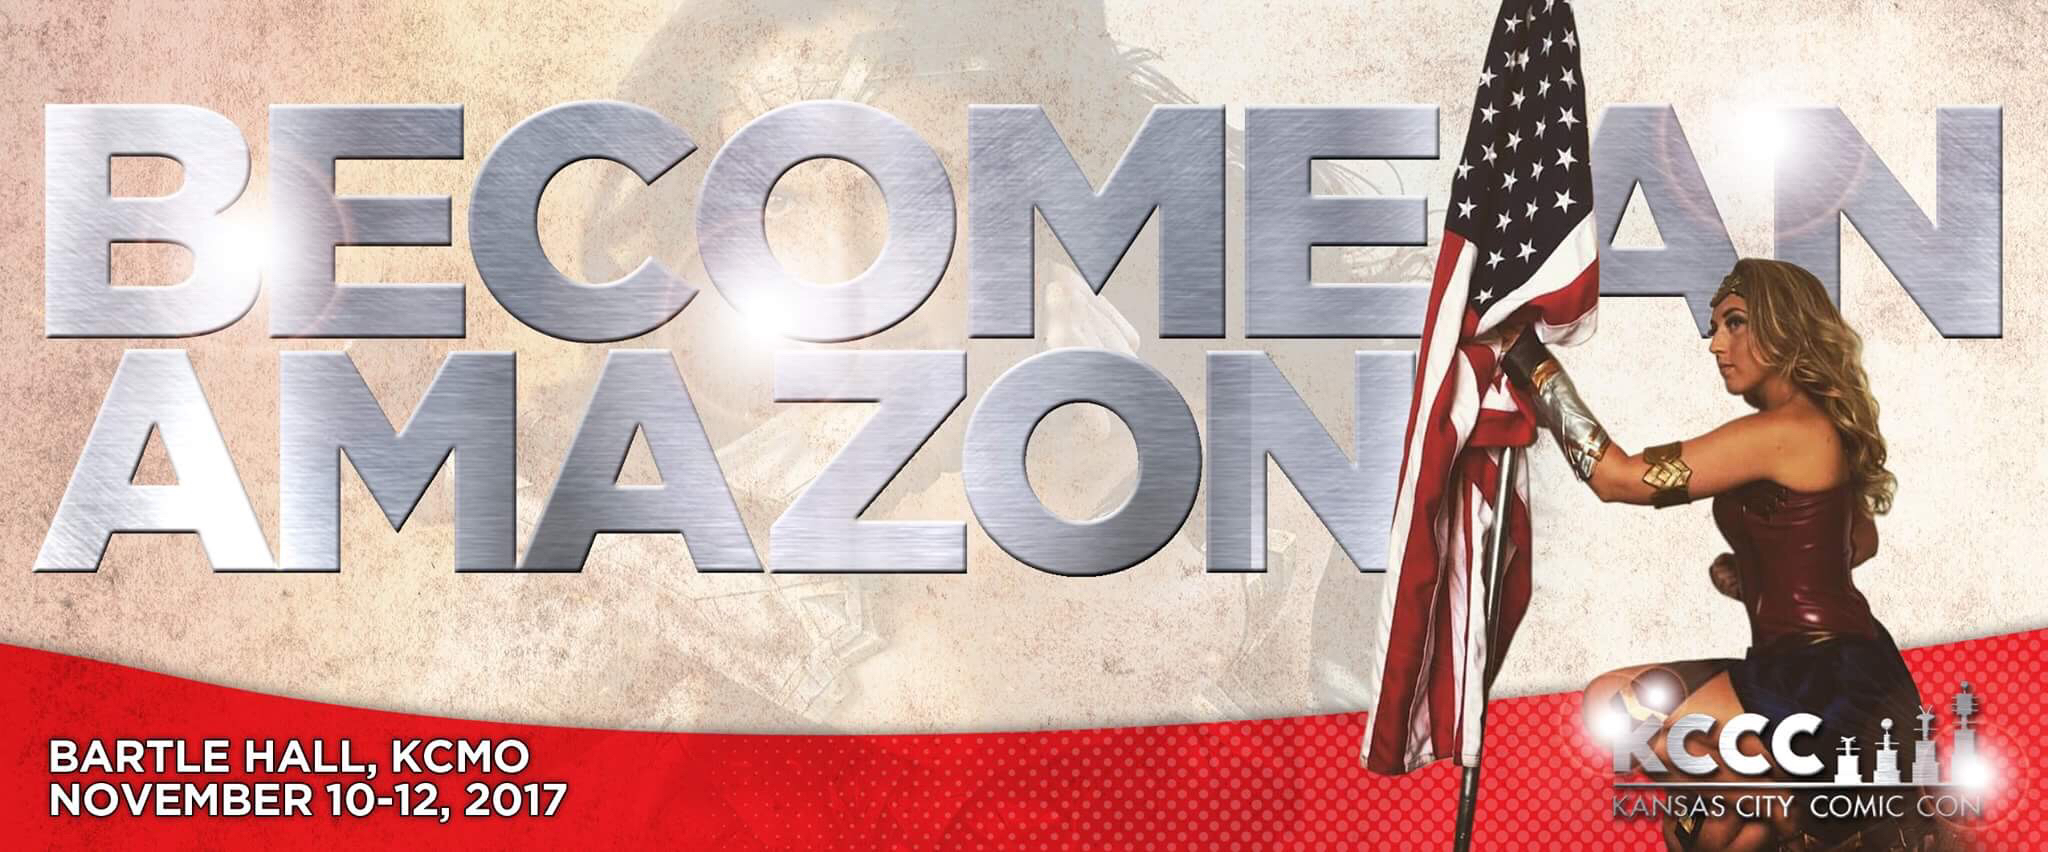 Become an Amazon (or Greek Warrior) at Kansas City Comic Con!  KCCC is bringing in a group of skilled cos-builders to run a 3-day cosplay building workshop during the convention!  After a short introduction to the materials and tools you will be using (Friday), you will spend two hours Saturday and two hours Sunday assembling and detailing your own personalized armor – pre-prepared and designed by the KCCC team. To top it all off we will have a photo shoot with your fellow Amazons and Greek Warriors on Sunday!  Hurry and reserve your spot today this event is only open to 50 students!  As a special bonus, all registered participants will be entered into a drawing for $100 in leather with which to begin crafting your next cosplay project! Click the link below to reserve your spot today!  Due to the materials and tools we will be working with, this event is only open to those 18 years of age and over. A liability waiver will be required to be signed prior to participation.